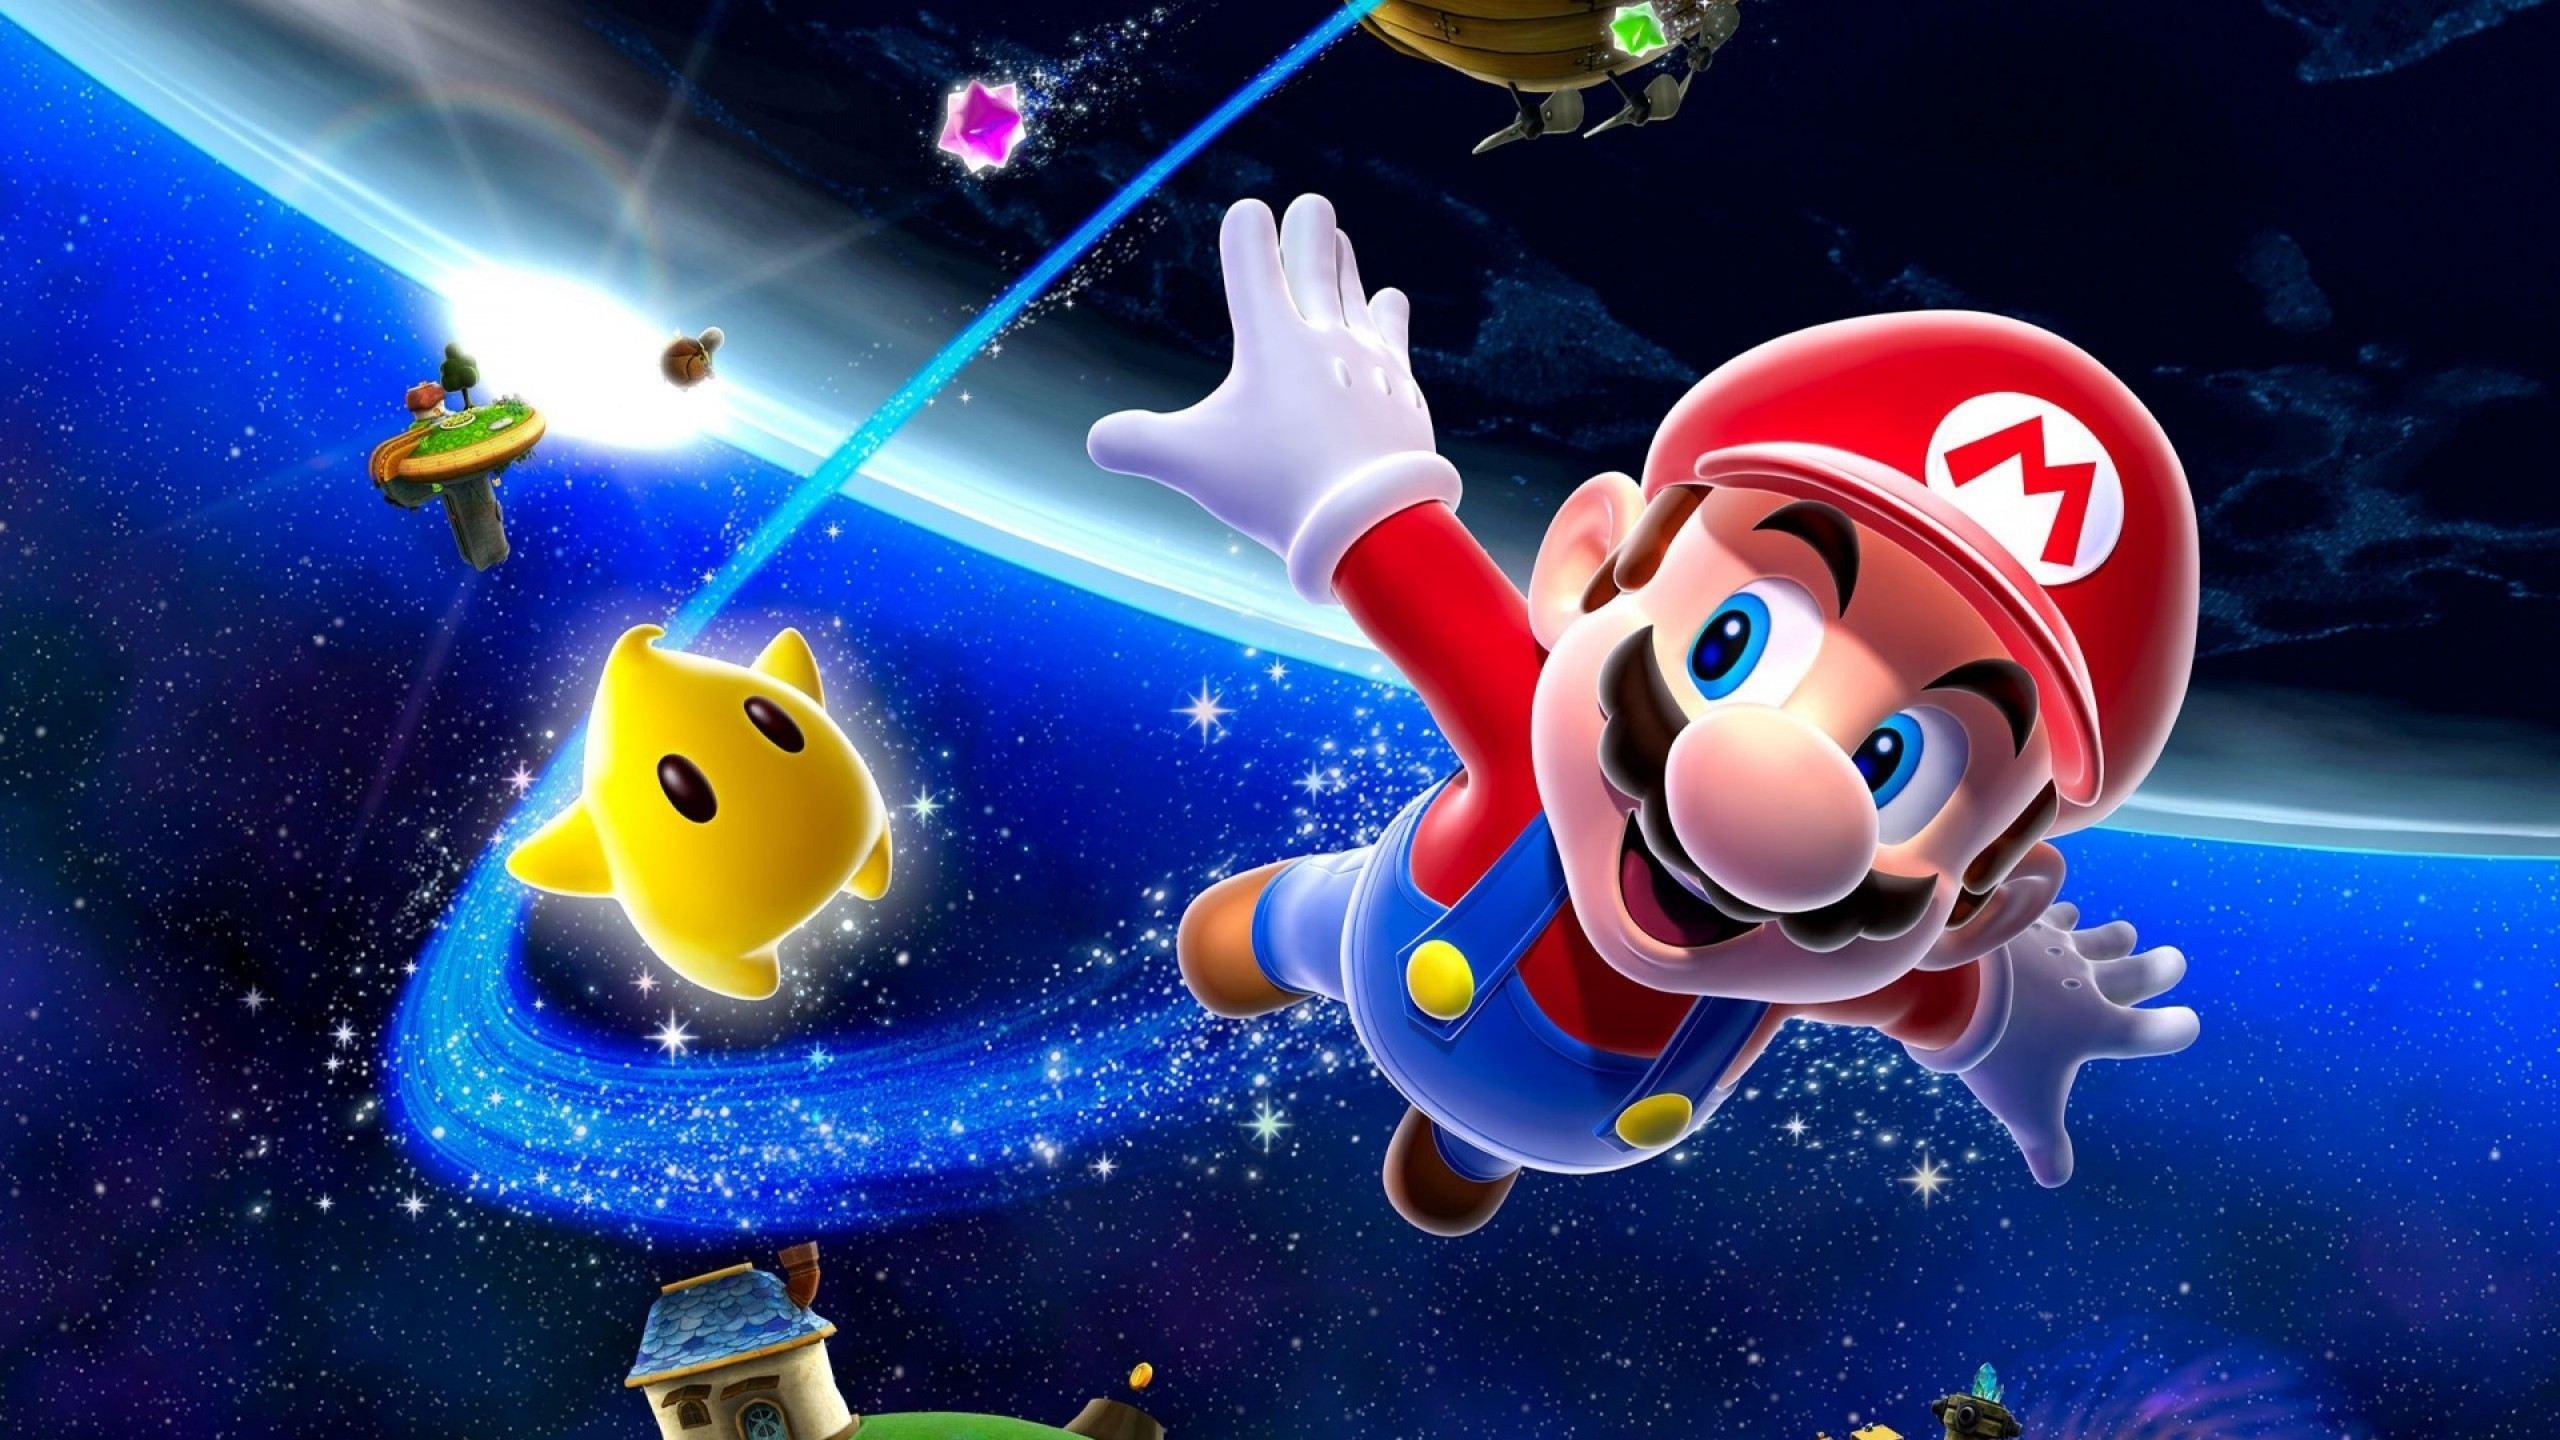 Wallpaper mario, space, characters, stars